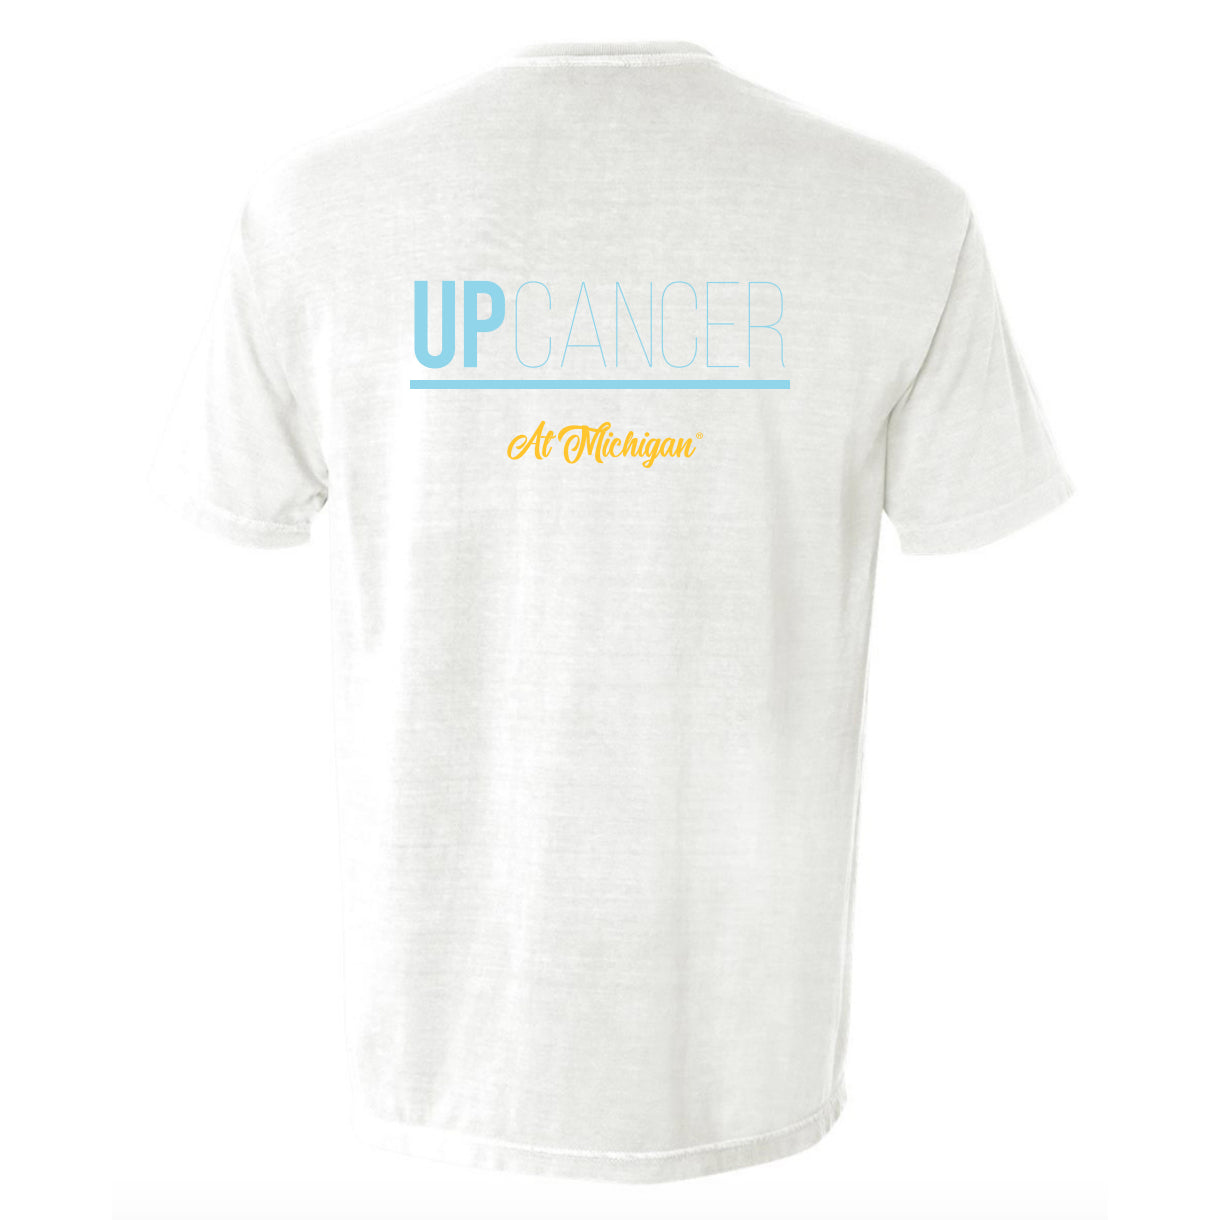 Up Cancer White Ribbon Shirt (Listing ID: 6582543548485)